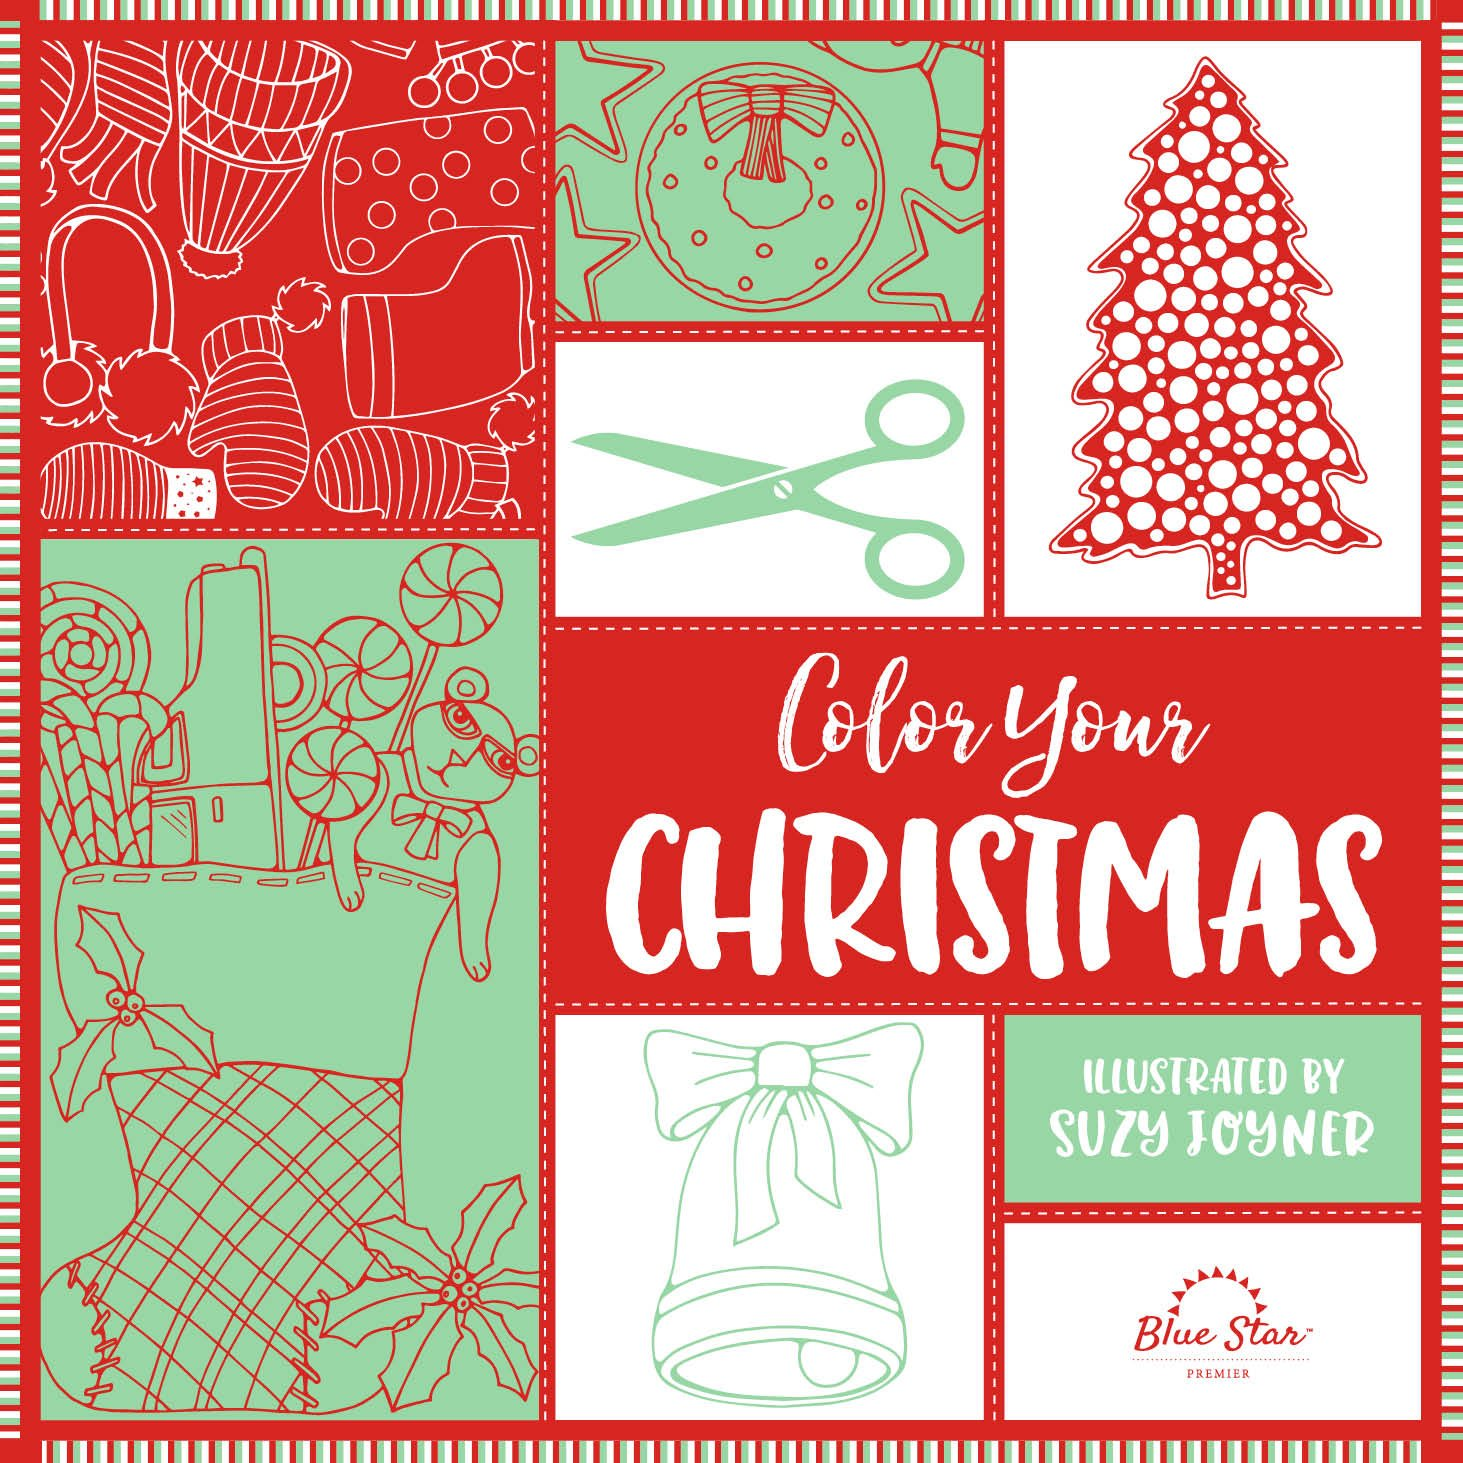 Amazon.com: Color Your Christmas: A Crafty Christmas Adult Coloring ...